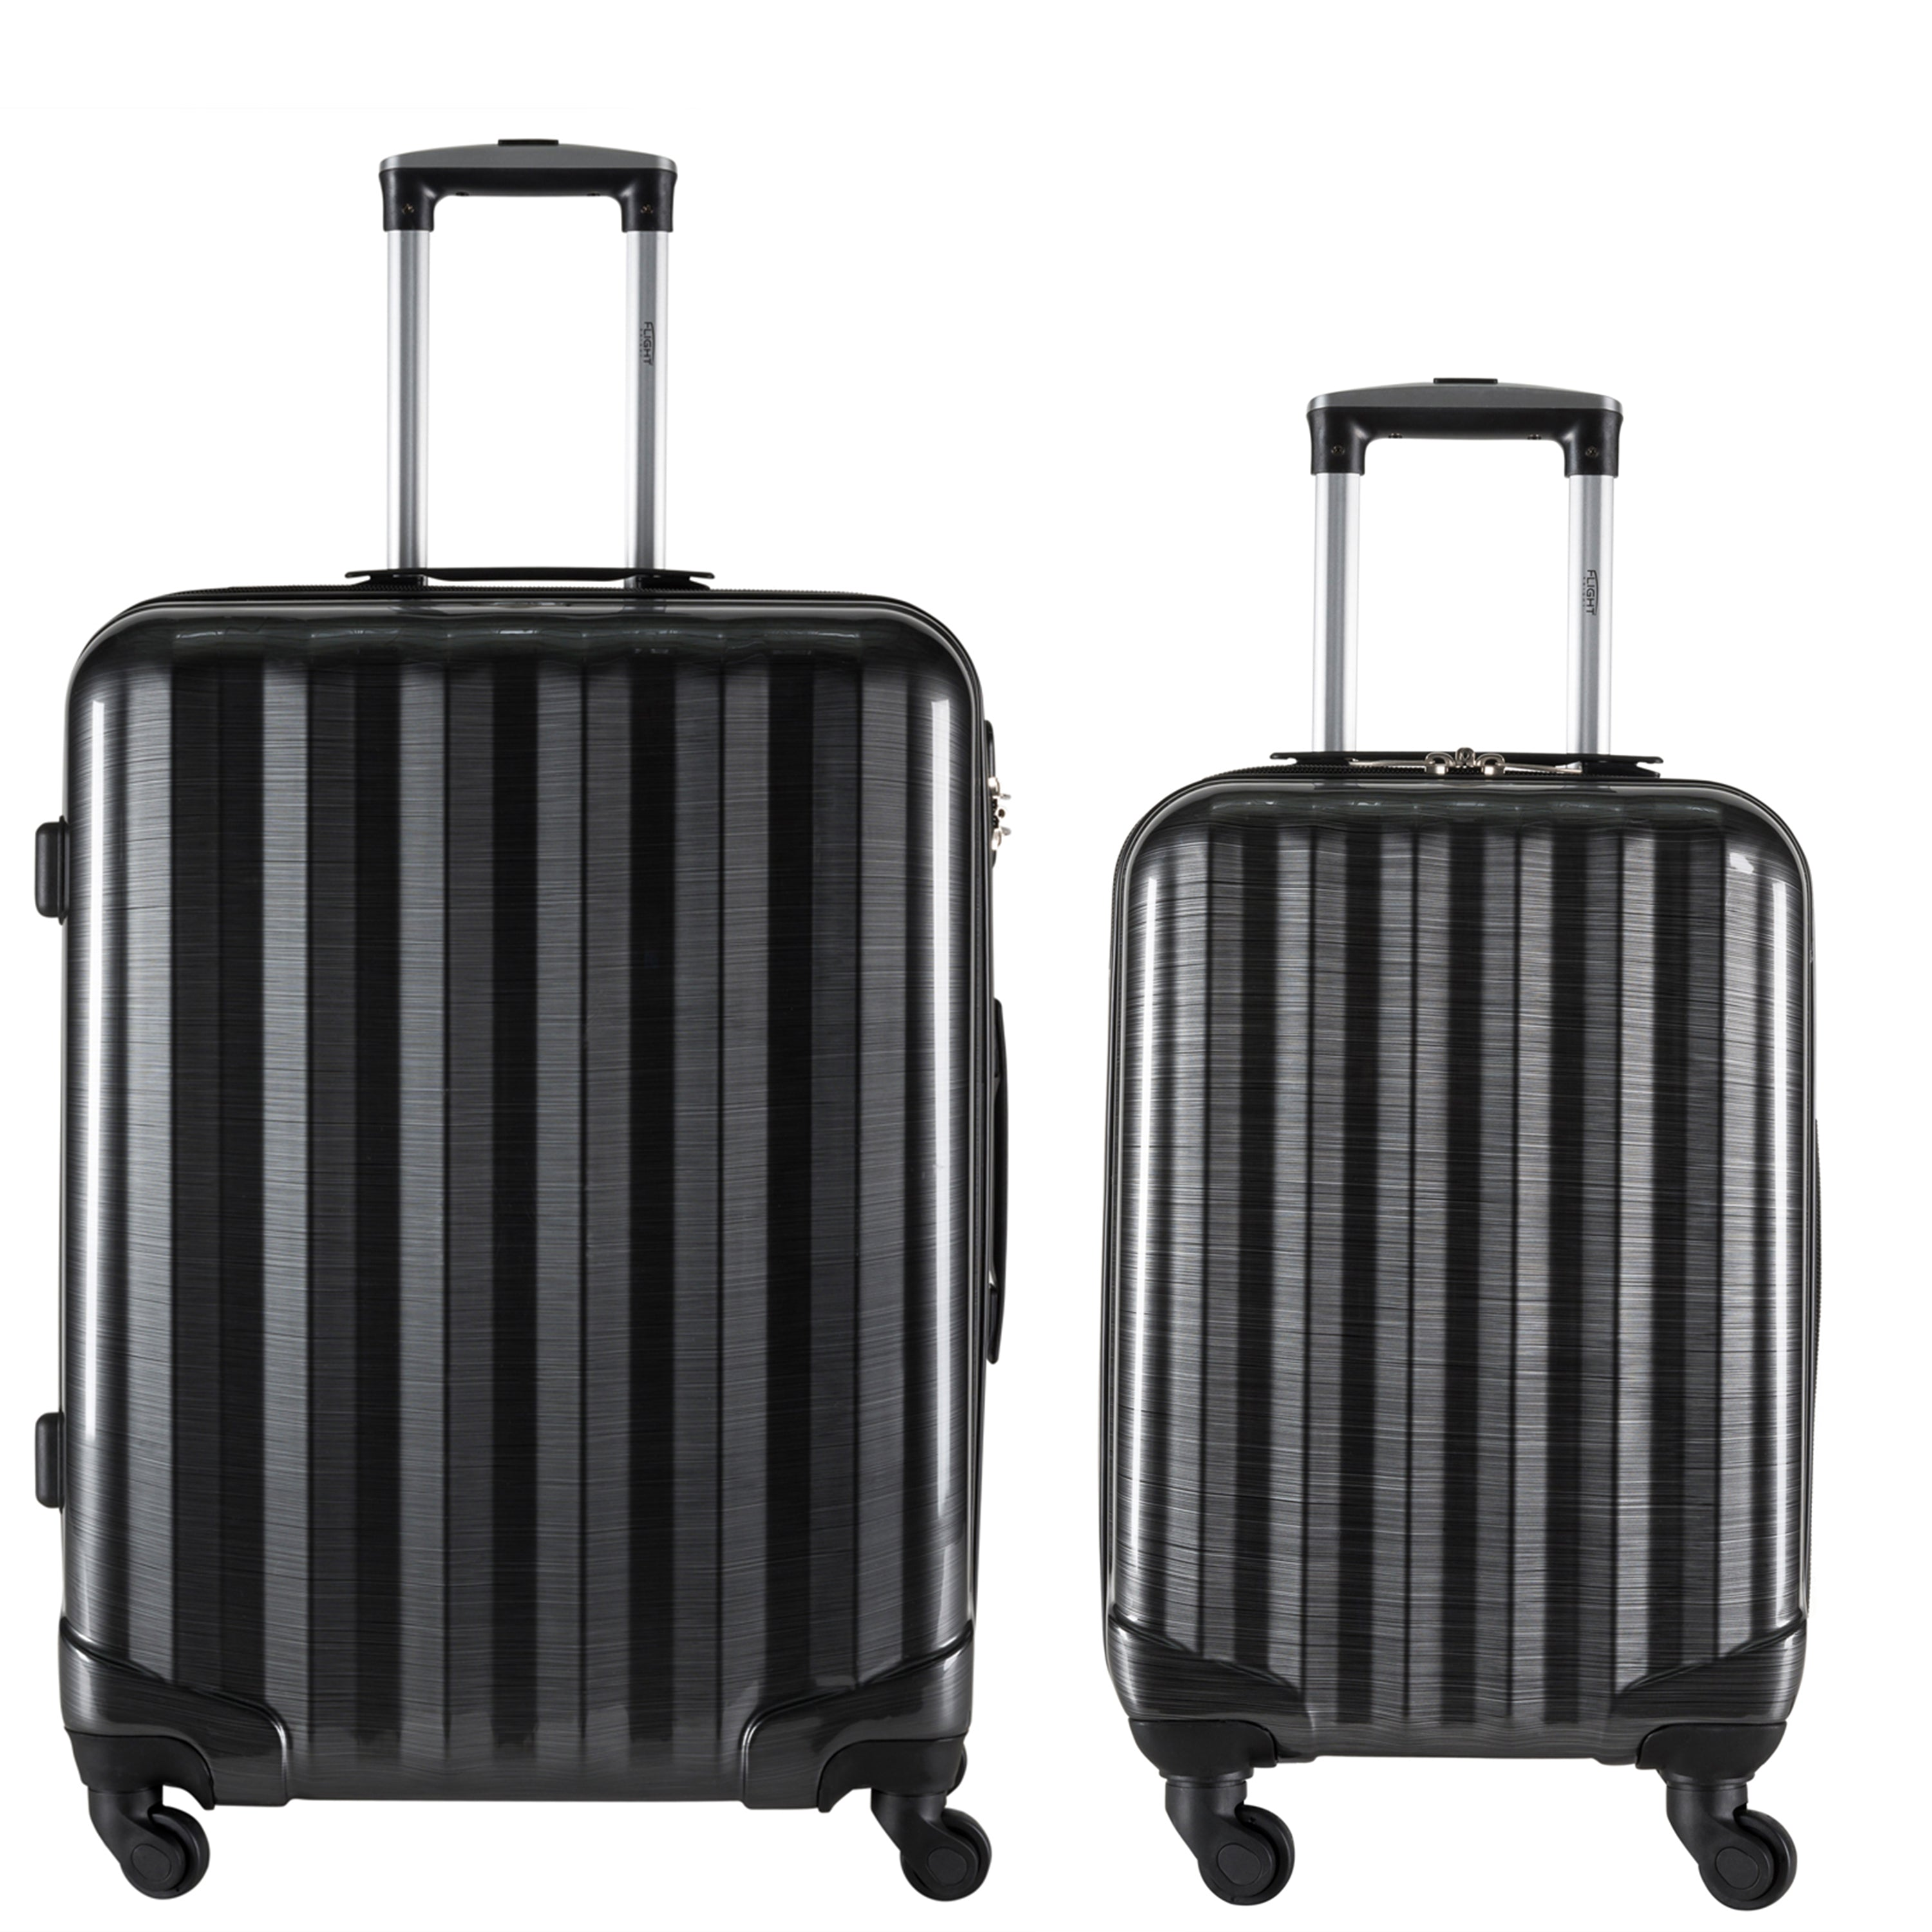 Ultra Lightweight 4 Wheel Hard Case Suitcases Hand Luggage and Hold Travel Bag